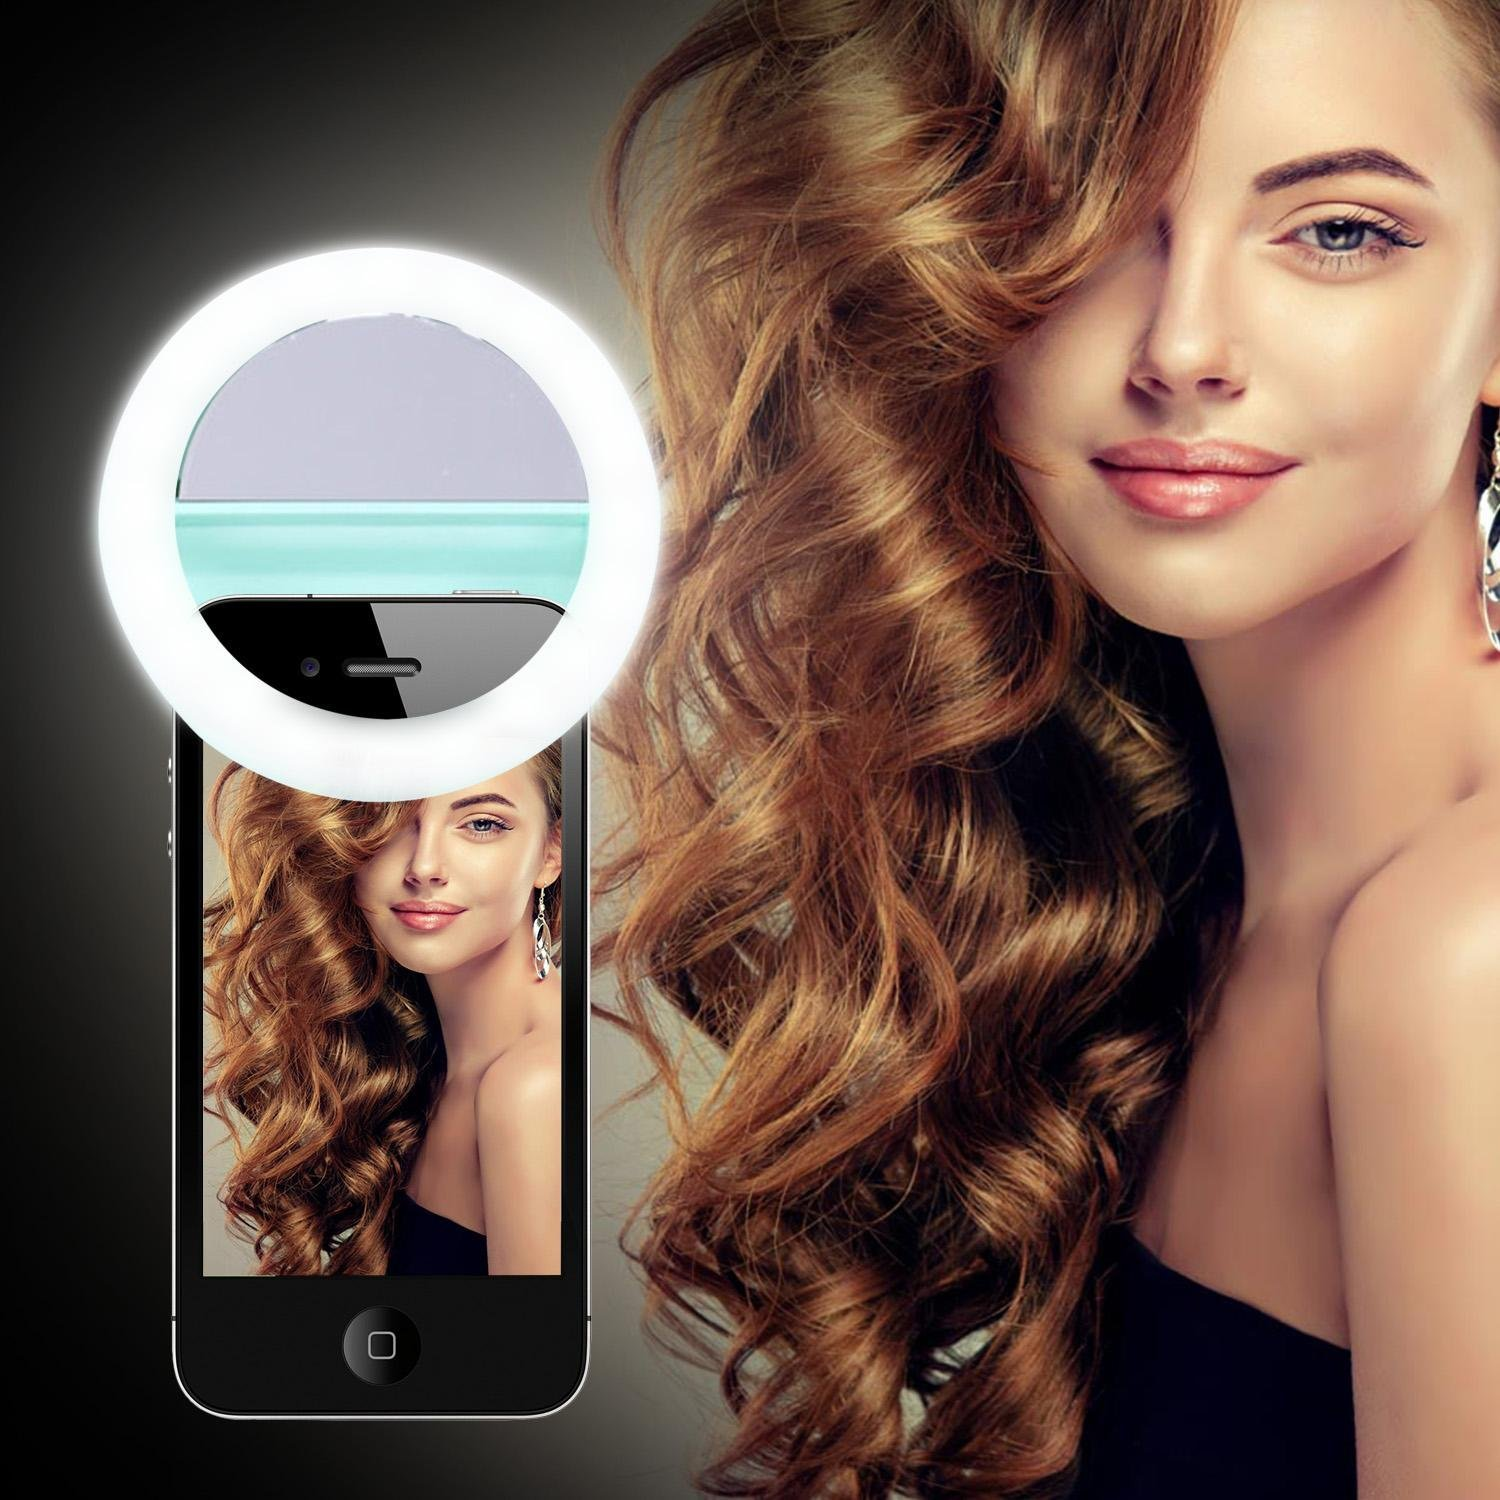 KOBWA 40 LED Selfie Ring Light,Clip-on Selfie Ring Fill Light for Camera with Makeup Mirror,Rechargable Battery,Selfie LED Camera Light for IPhone IPad Sumsung Galaxy Smart Phones